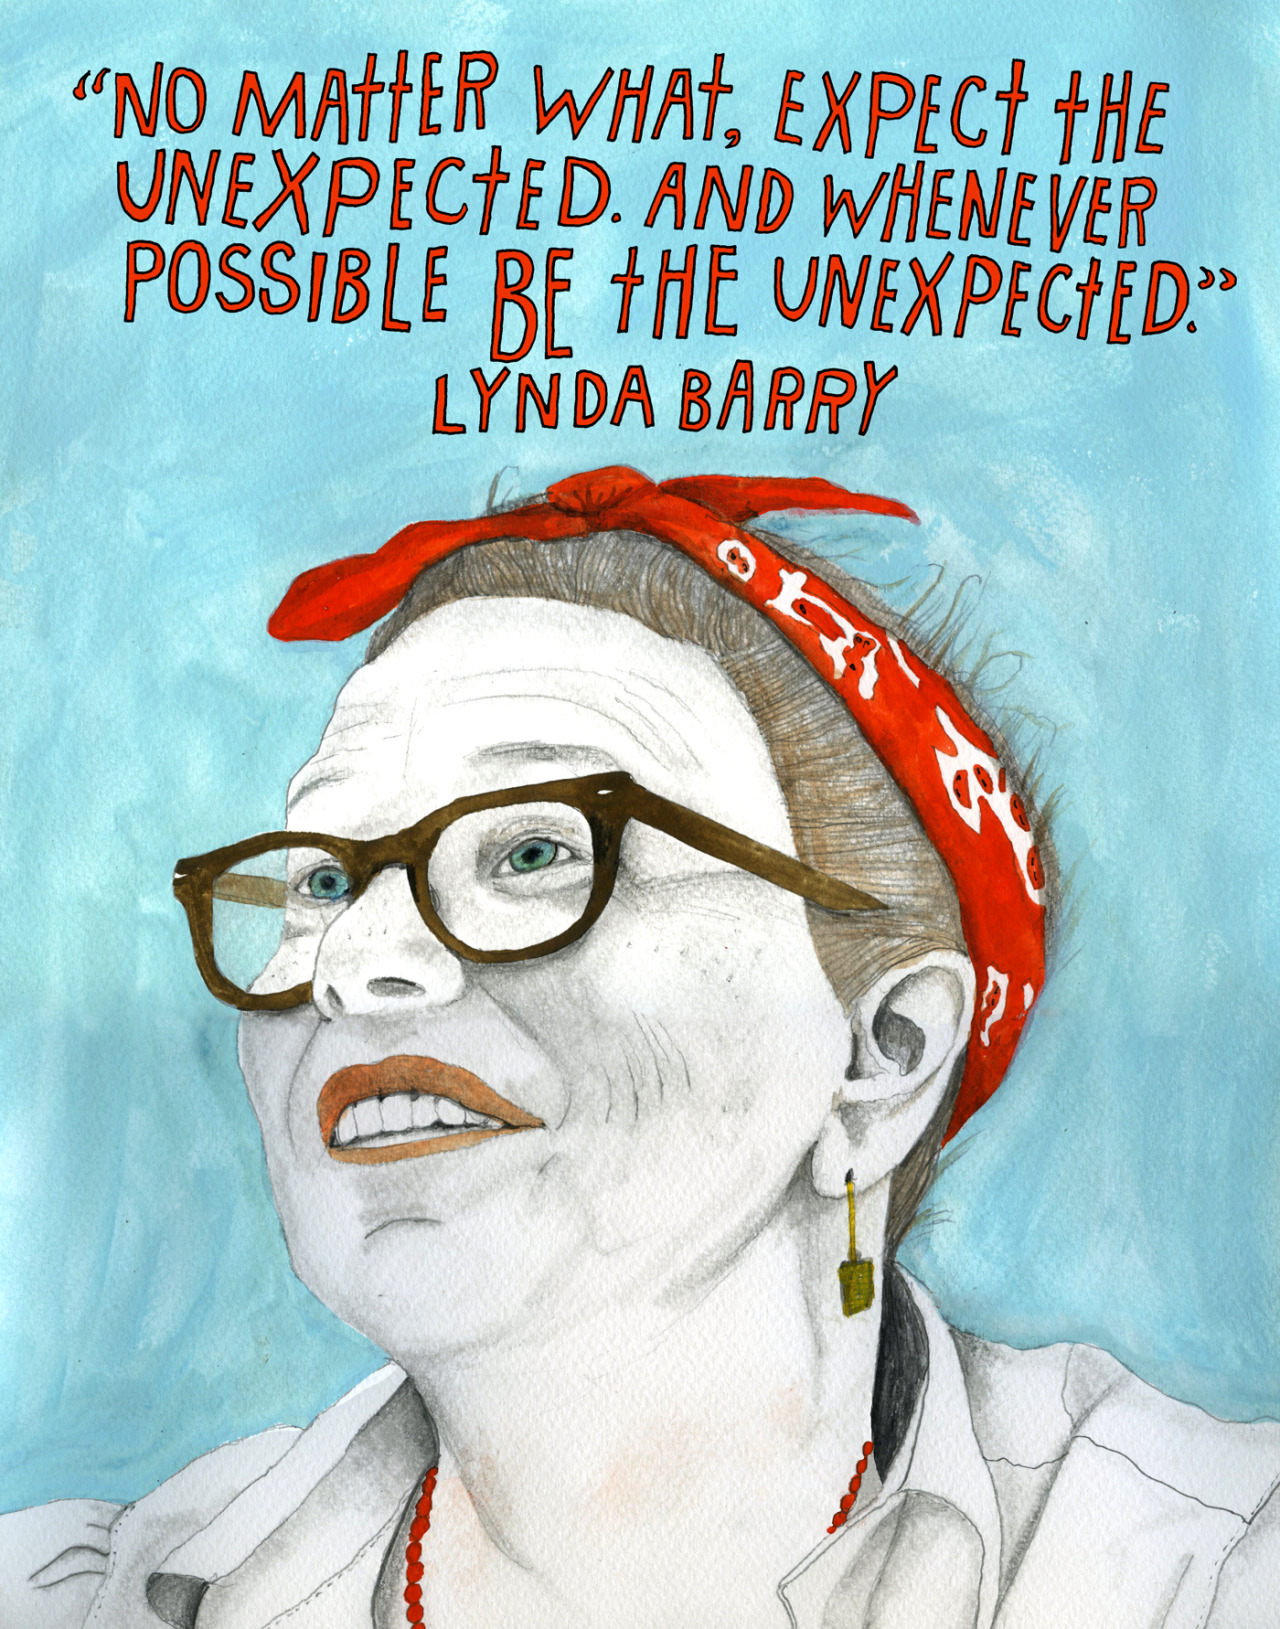 thereconstructionists:  American cartoonist and author Lynda Barry (born January 2, 1956) is as much a storyteller as she is a visual philosopher. From her 1999 graphic-novel-turned-off-Broadway-hit The Good Times Are Killing Me, exploring the interracial relationship between two girls, to her long-running, deeply empathic weekly comic strip Ernie Pook's Comeek, Barry's instantly recognizable works are invariably imbued with equal parts humor, irreverence, sensitivity, and wisdom. In 2009, her graphic novel What Is, published the previous year, received an Eisner Award for Best Reality-Based Work. But perhaps the most remarkable quality of Barry's work is precisely its defiance of reality — the whimsy and wit with which she blurs the line between the real and, to borrow Sartre's term, the irreal to peel away at some simple truth or grand complexity of what it means to be human. Learn more: Wikipedia  |  Books  |  Literary Jukebox